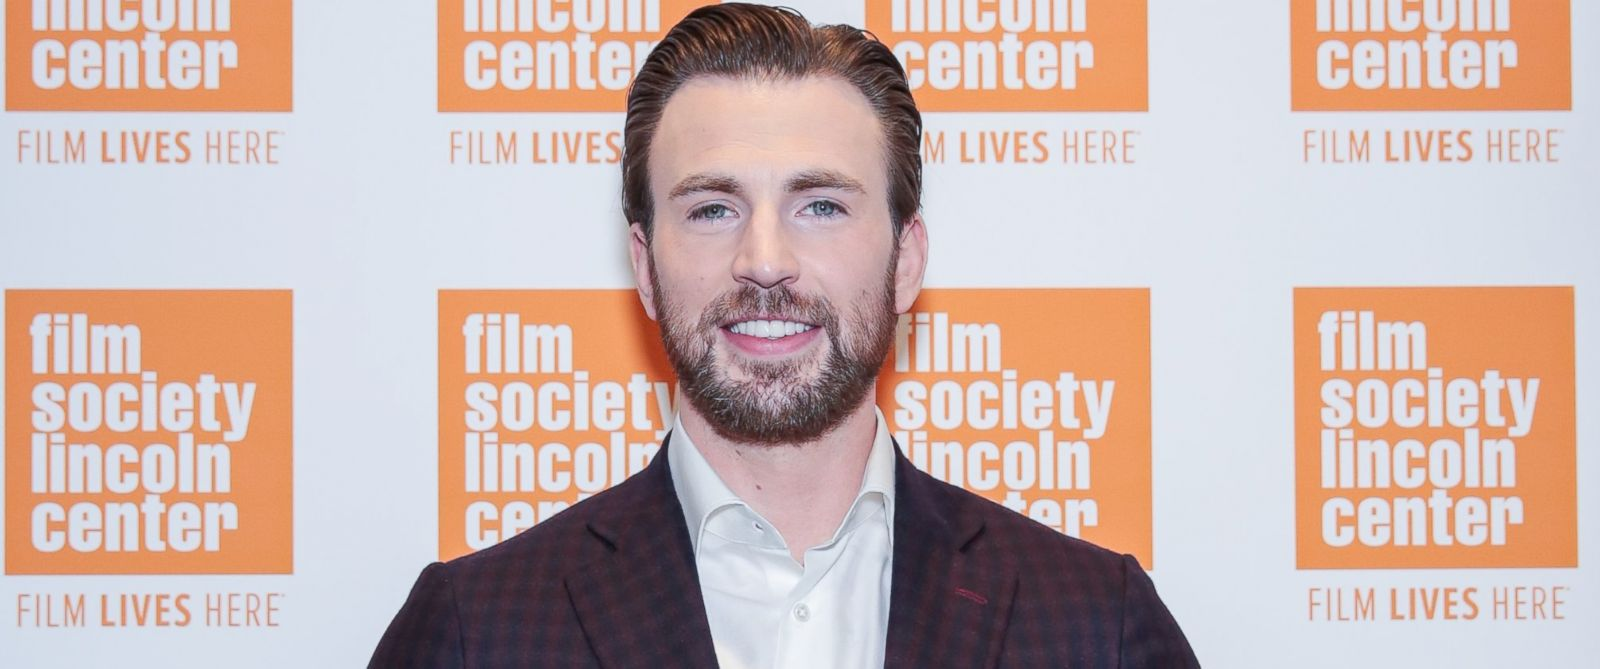 "PHOTO: Chris Evans attends the New York premiere of the film ""Gifted"" at the New York Institute of Technology, April 6, 2017, in New York."